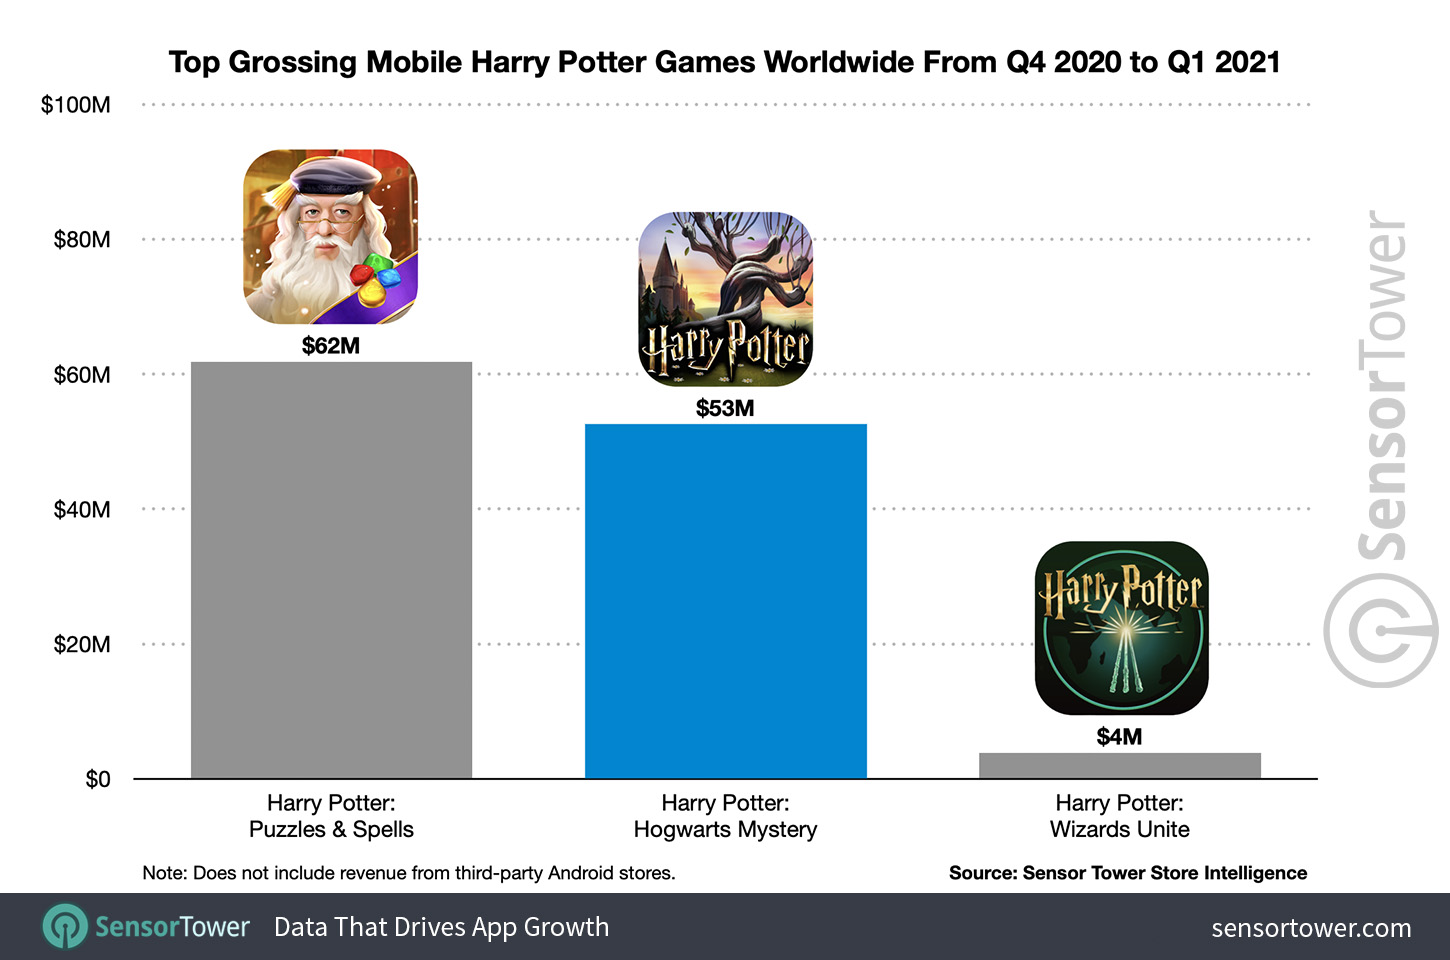 Top Grossing Mobile Harry Potter Games Worldwide From Q4 2020 to Q1 2021